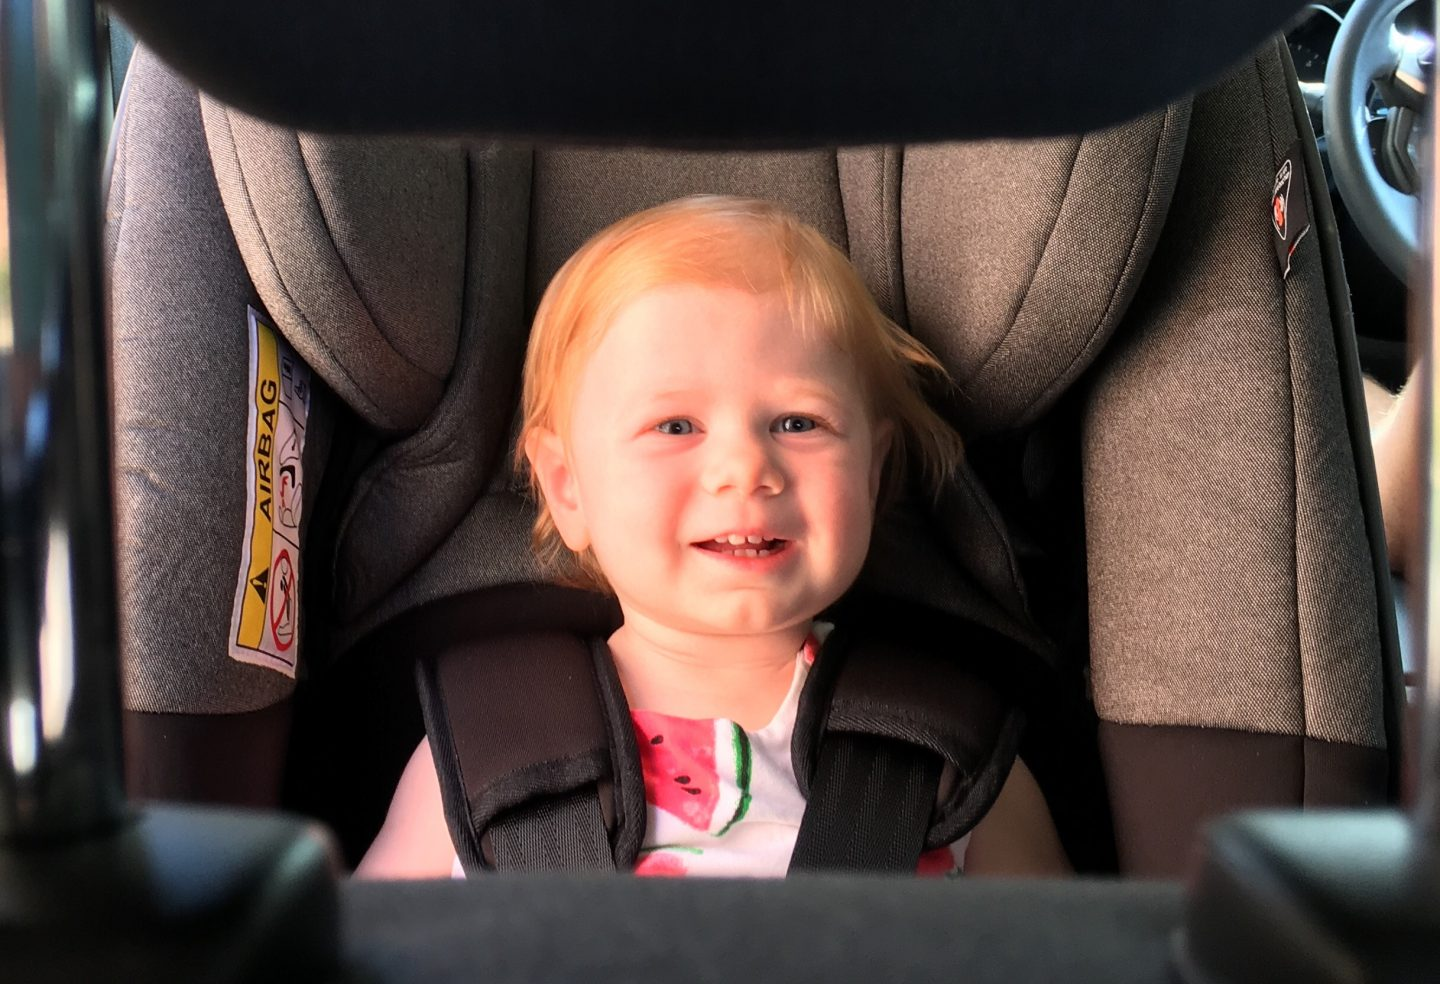 Diono Radian 5, extended rear facing car seat. Diono Radian 5 review